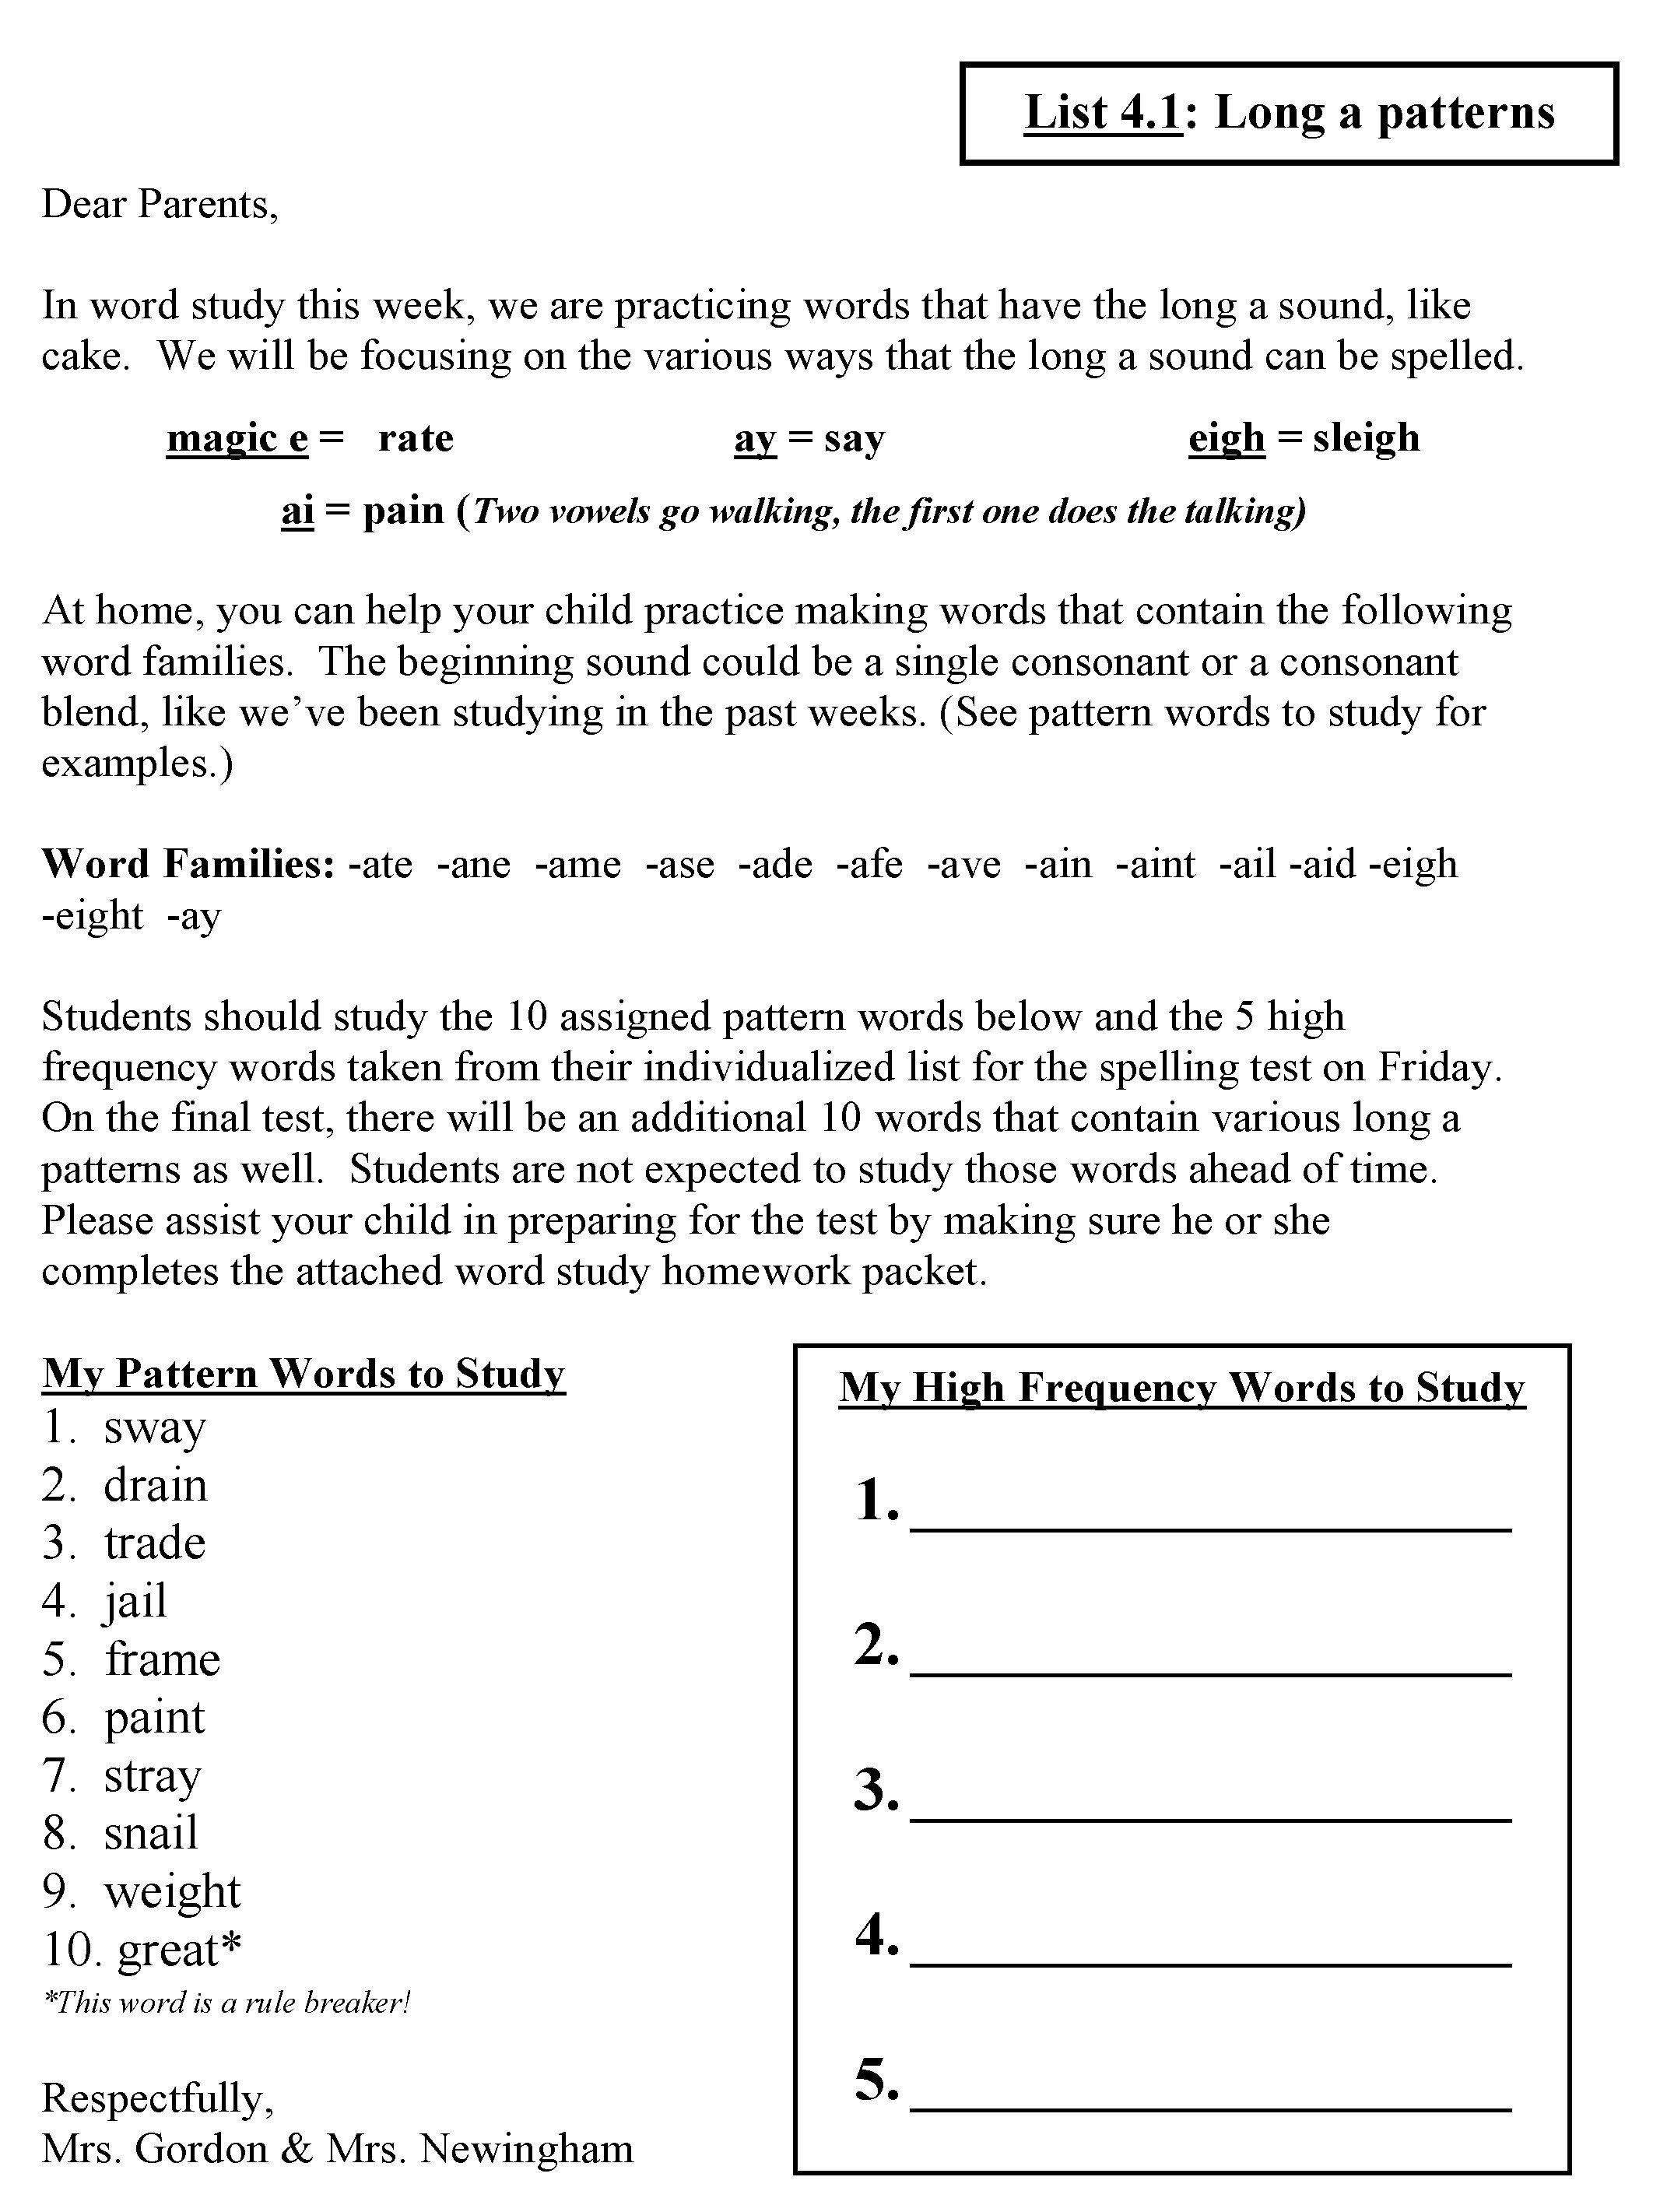 Words Their Way Hw Letter  Great Classroom Ideas  Word Study Within Words Their Way Blank Sort Template